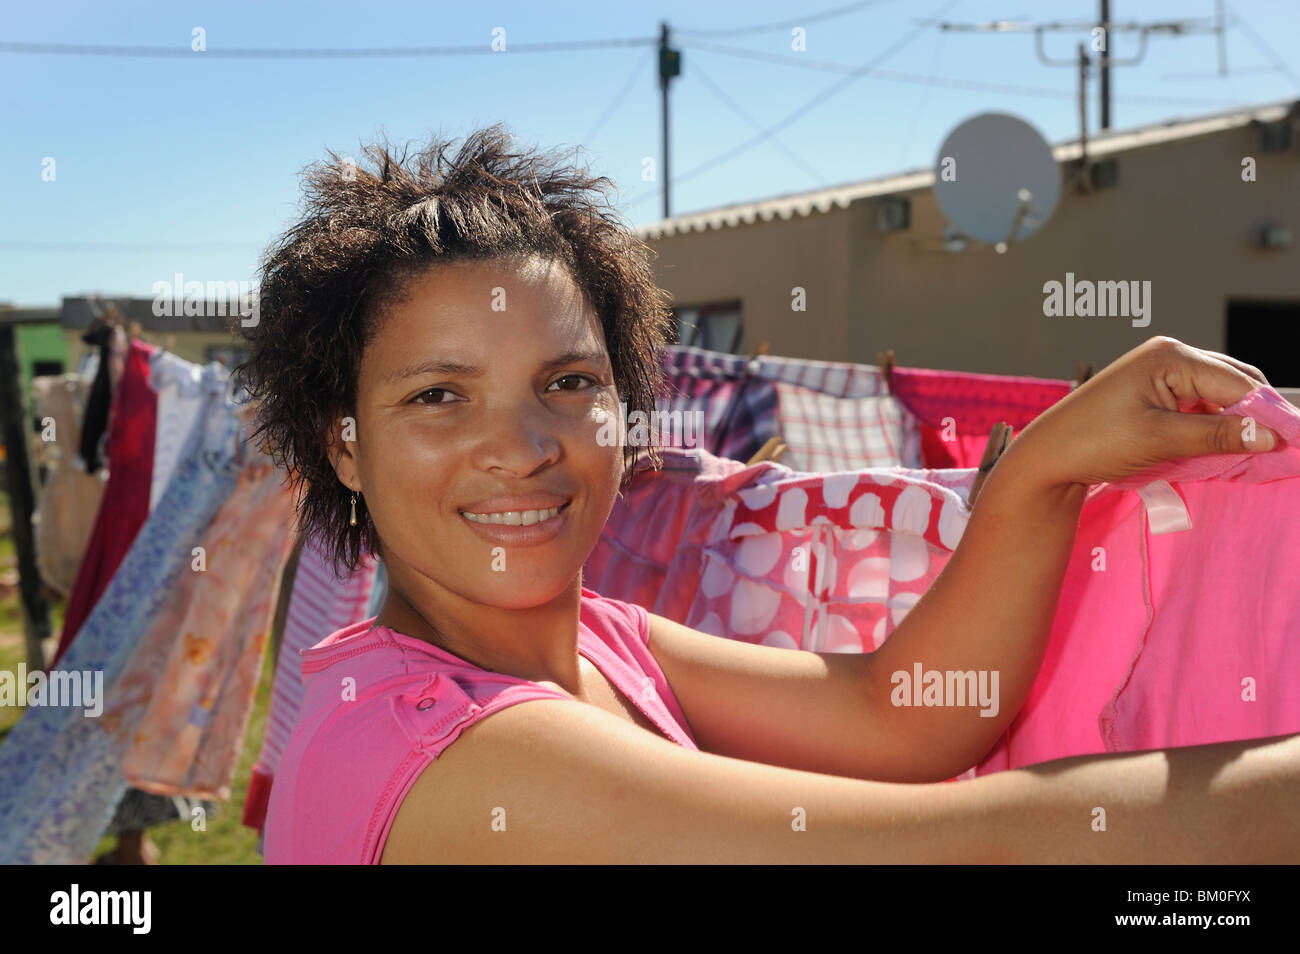 Woman hanging up laundry, St Francis Bay, Sea Vista, Eastern Cape Province, South Africa - Stock Image